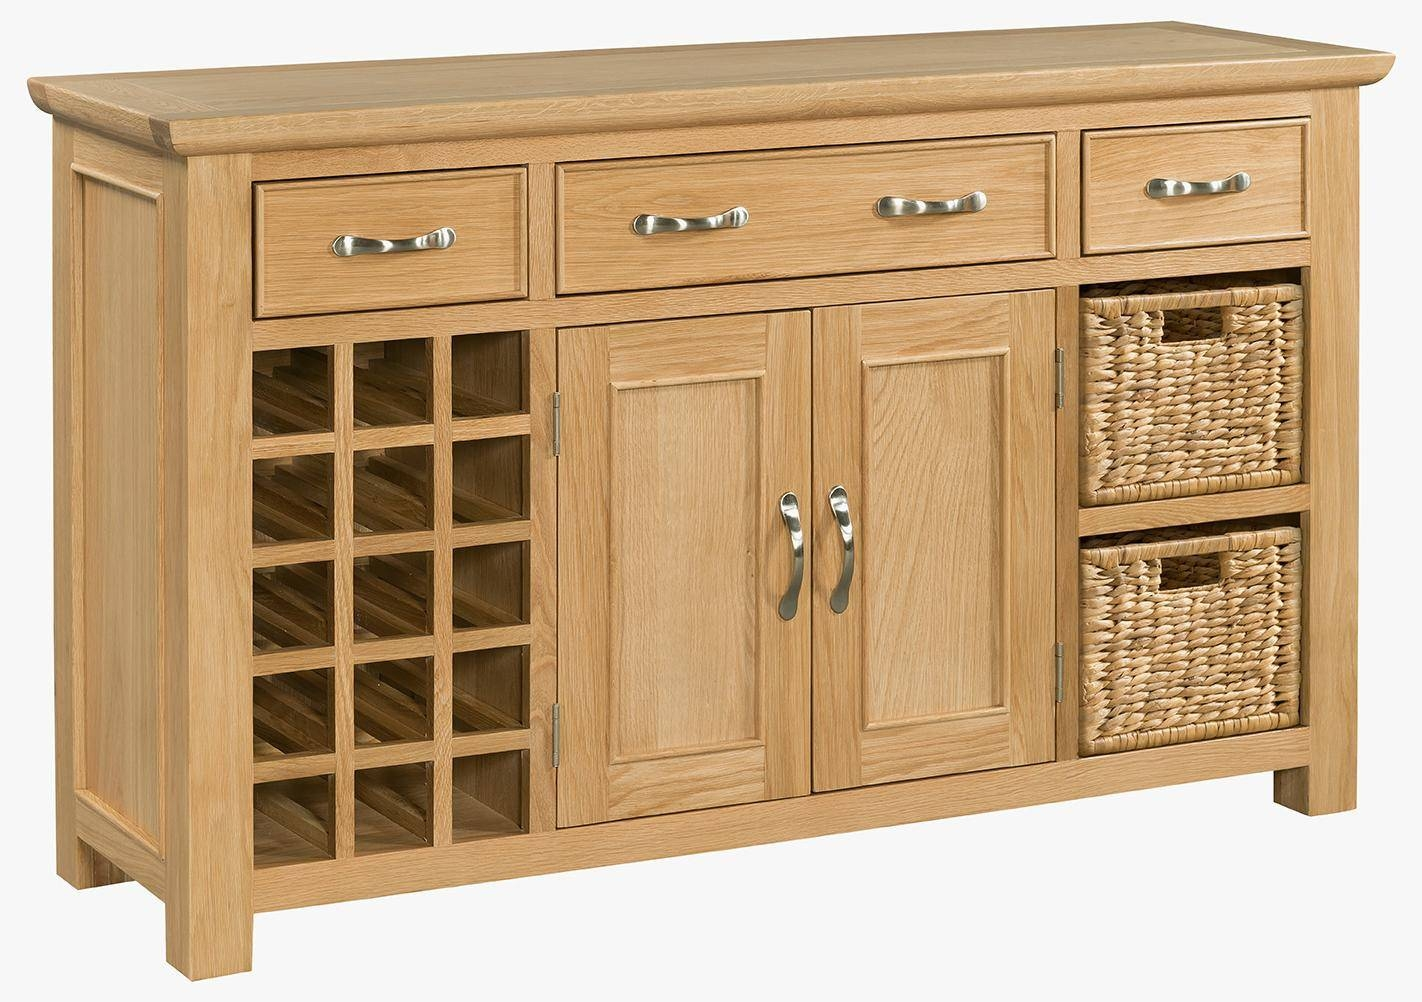 Oak Large Sideboard With Wine Rack (Sie054) – Solid Wood & Painted Throughout Most Recent Sideboards With Wine Rack (#8 of 15)